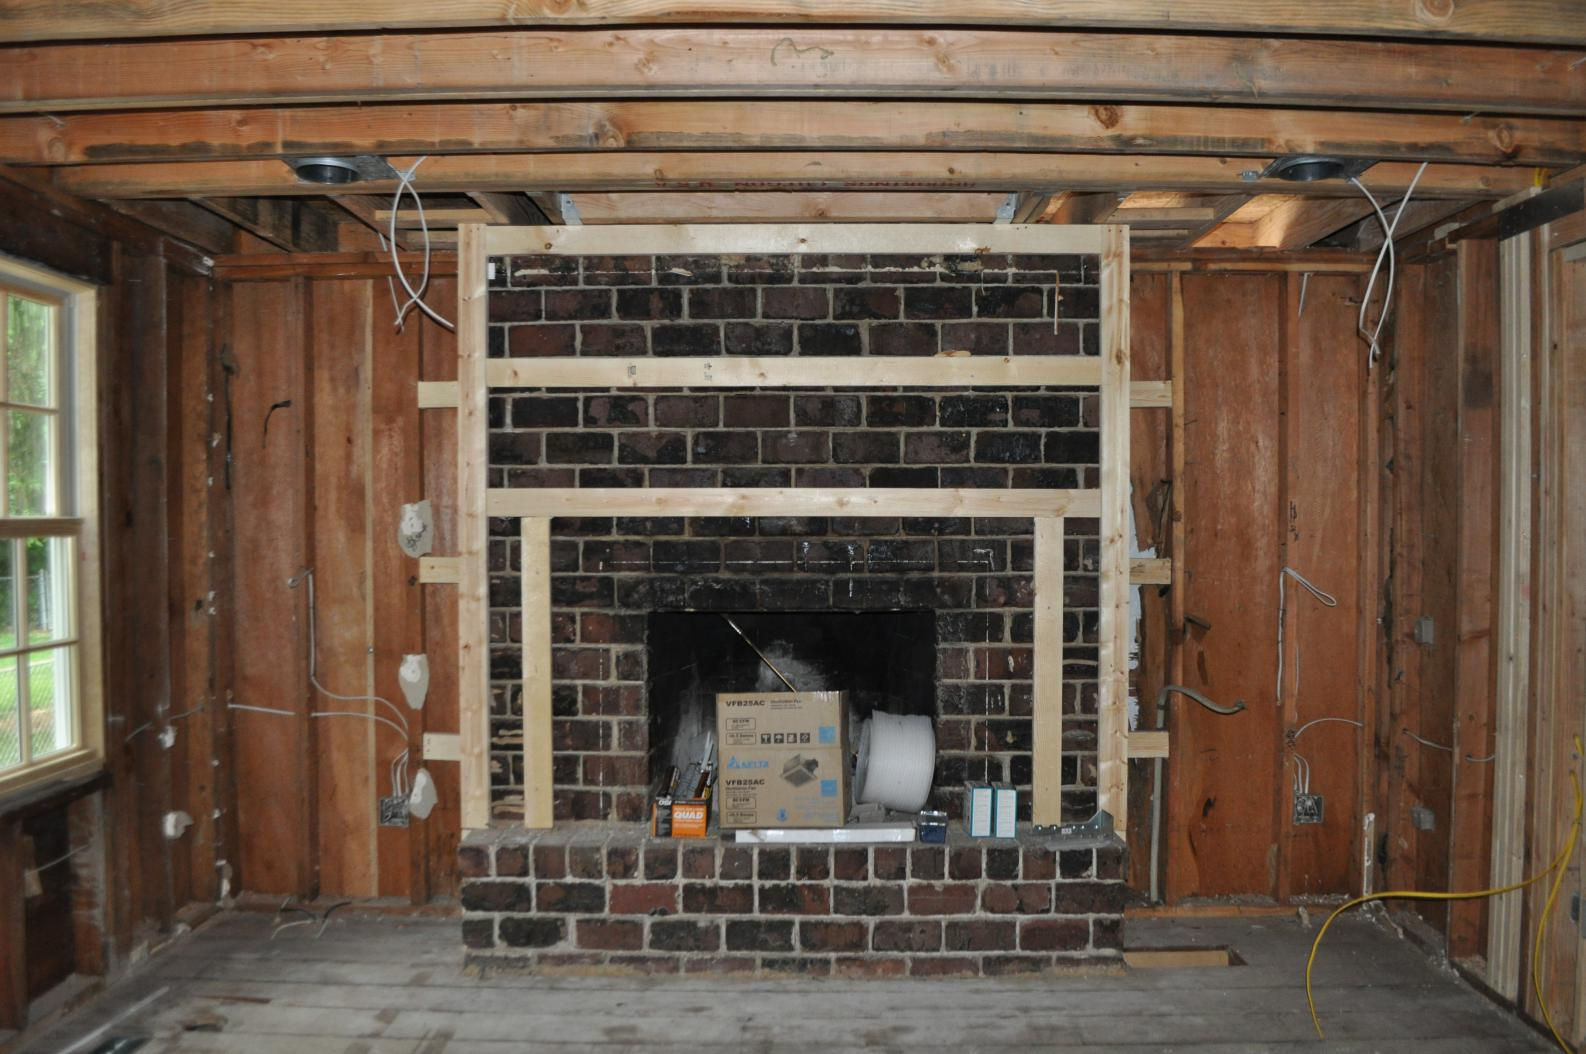 Best Of 15 Images Framing Corner Fireplace - Building ...